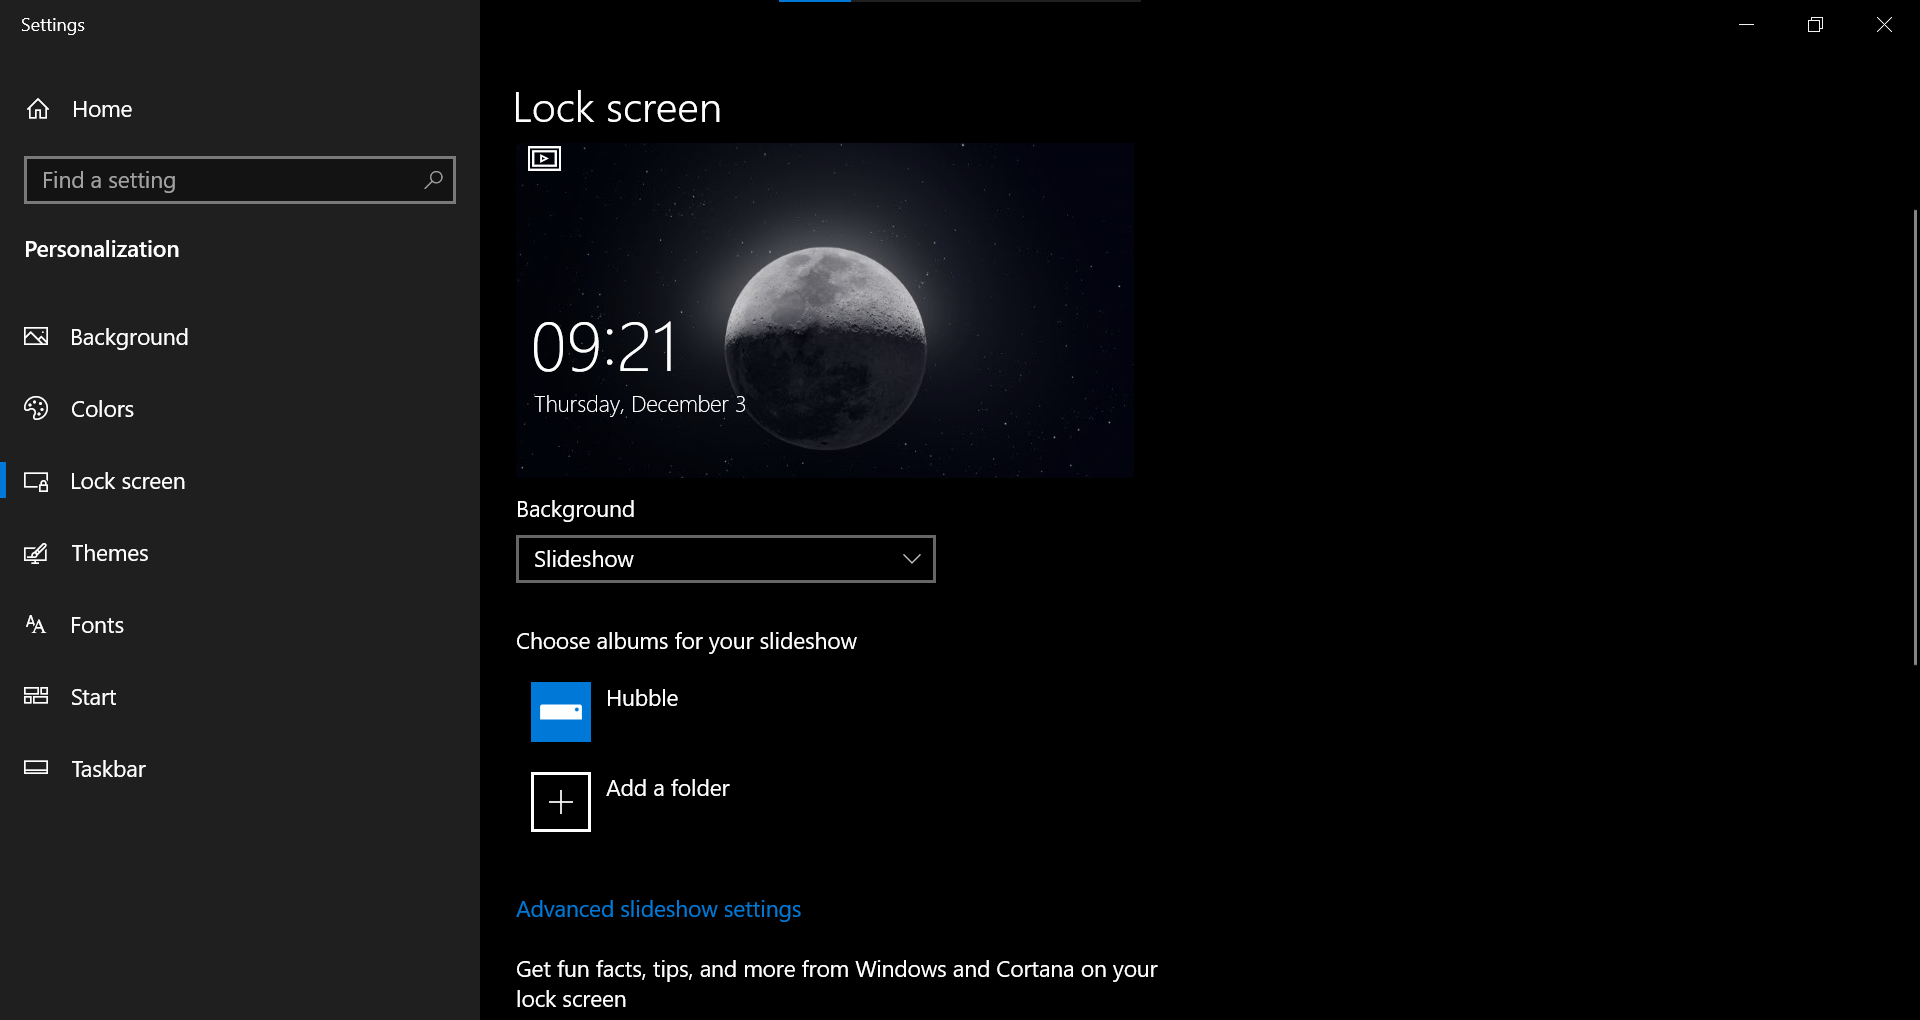 Windows 10 Lock Screen Issues de644efa-8ed2-482f-aa1e-406fd1709d6a?upload=true.png